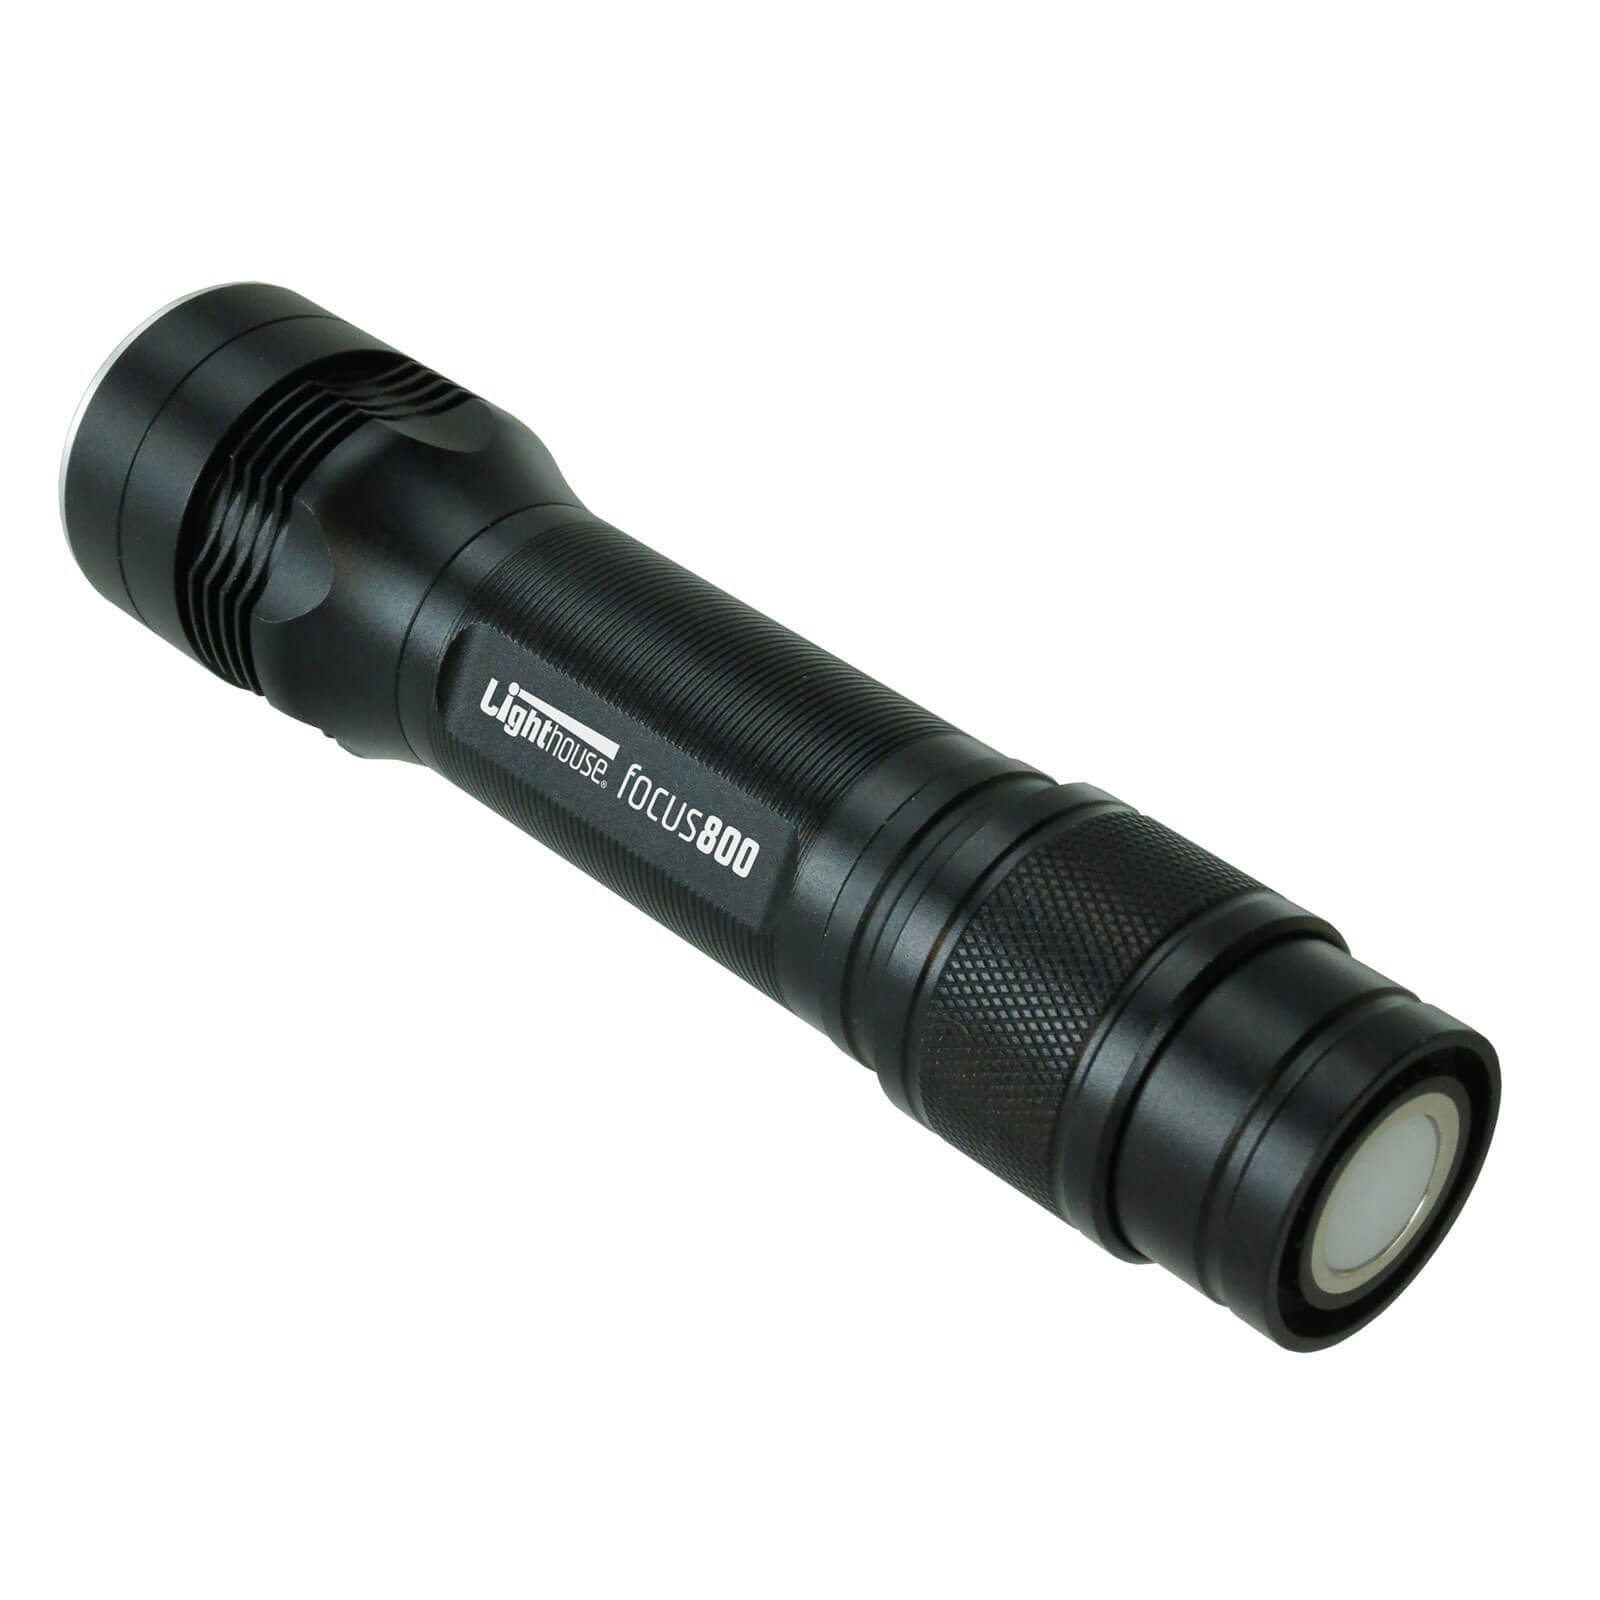 Lighthouse Elite High Performance 800 Lumens LED Rechargeable Torch /& Powerbank